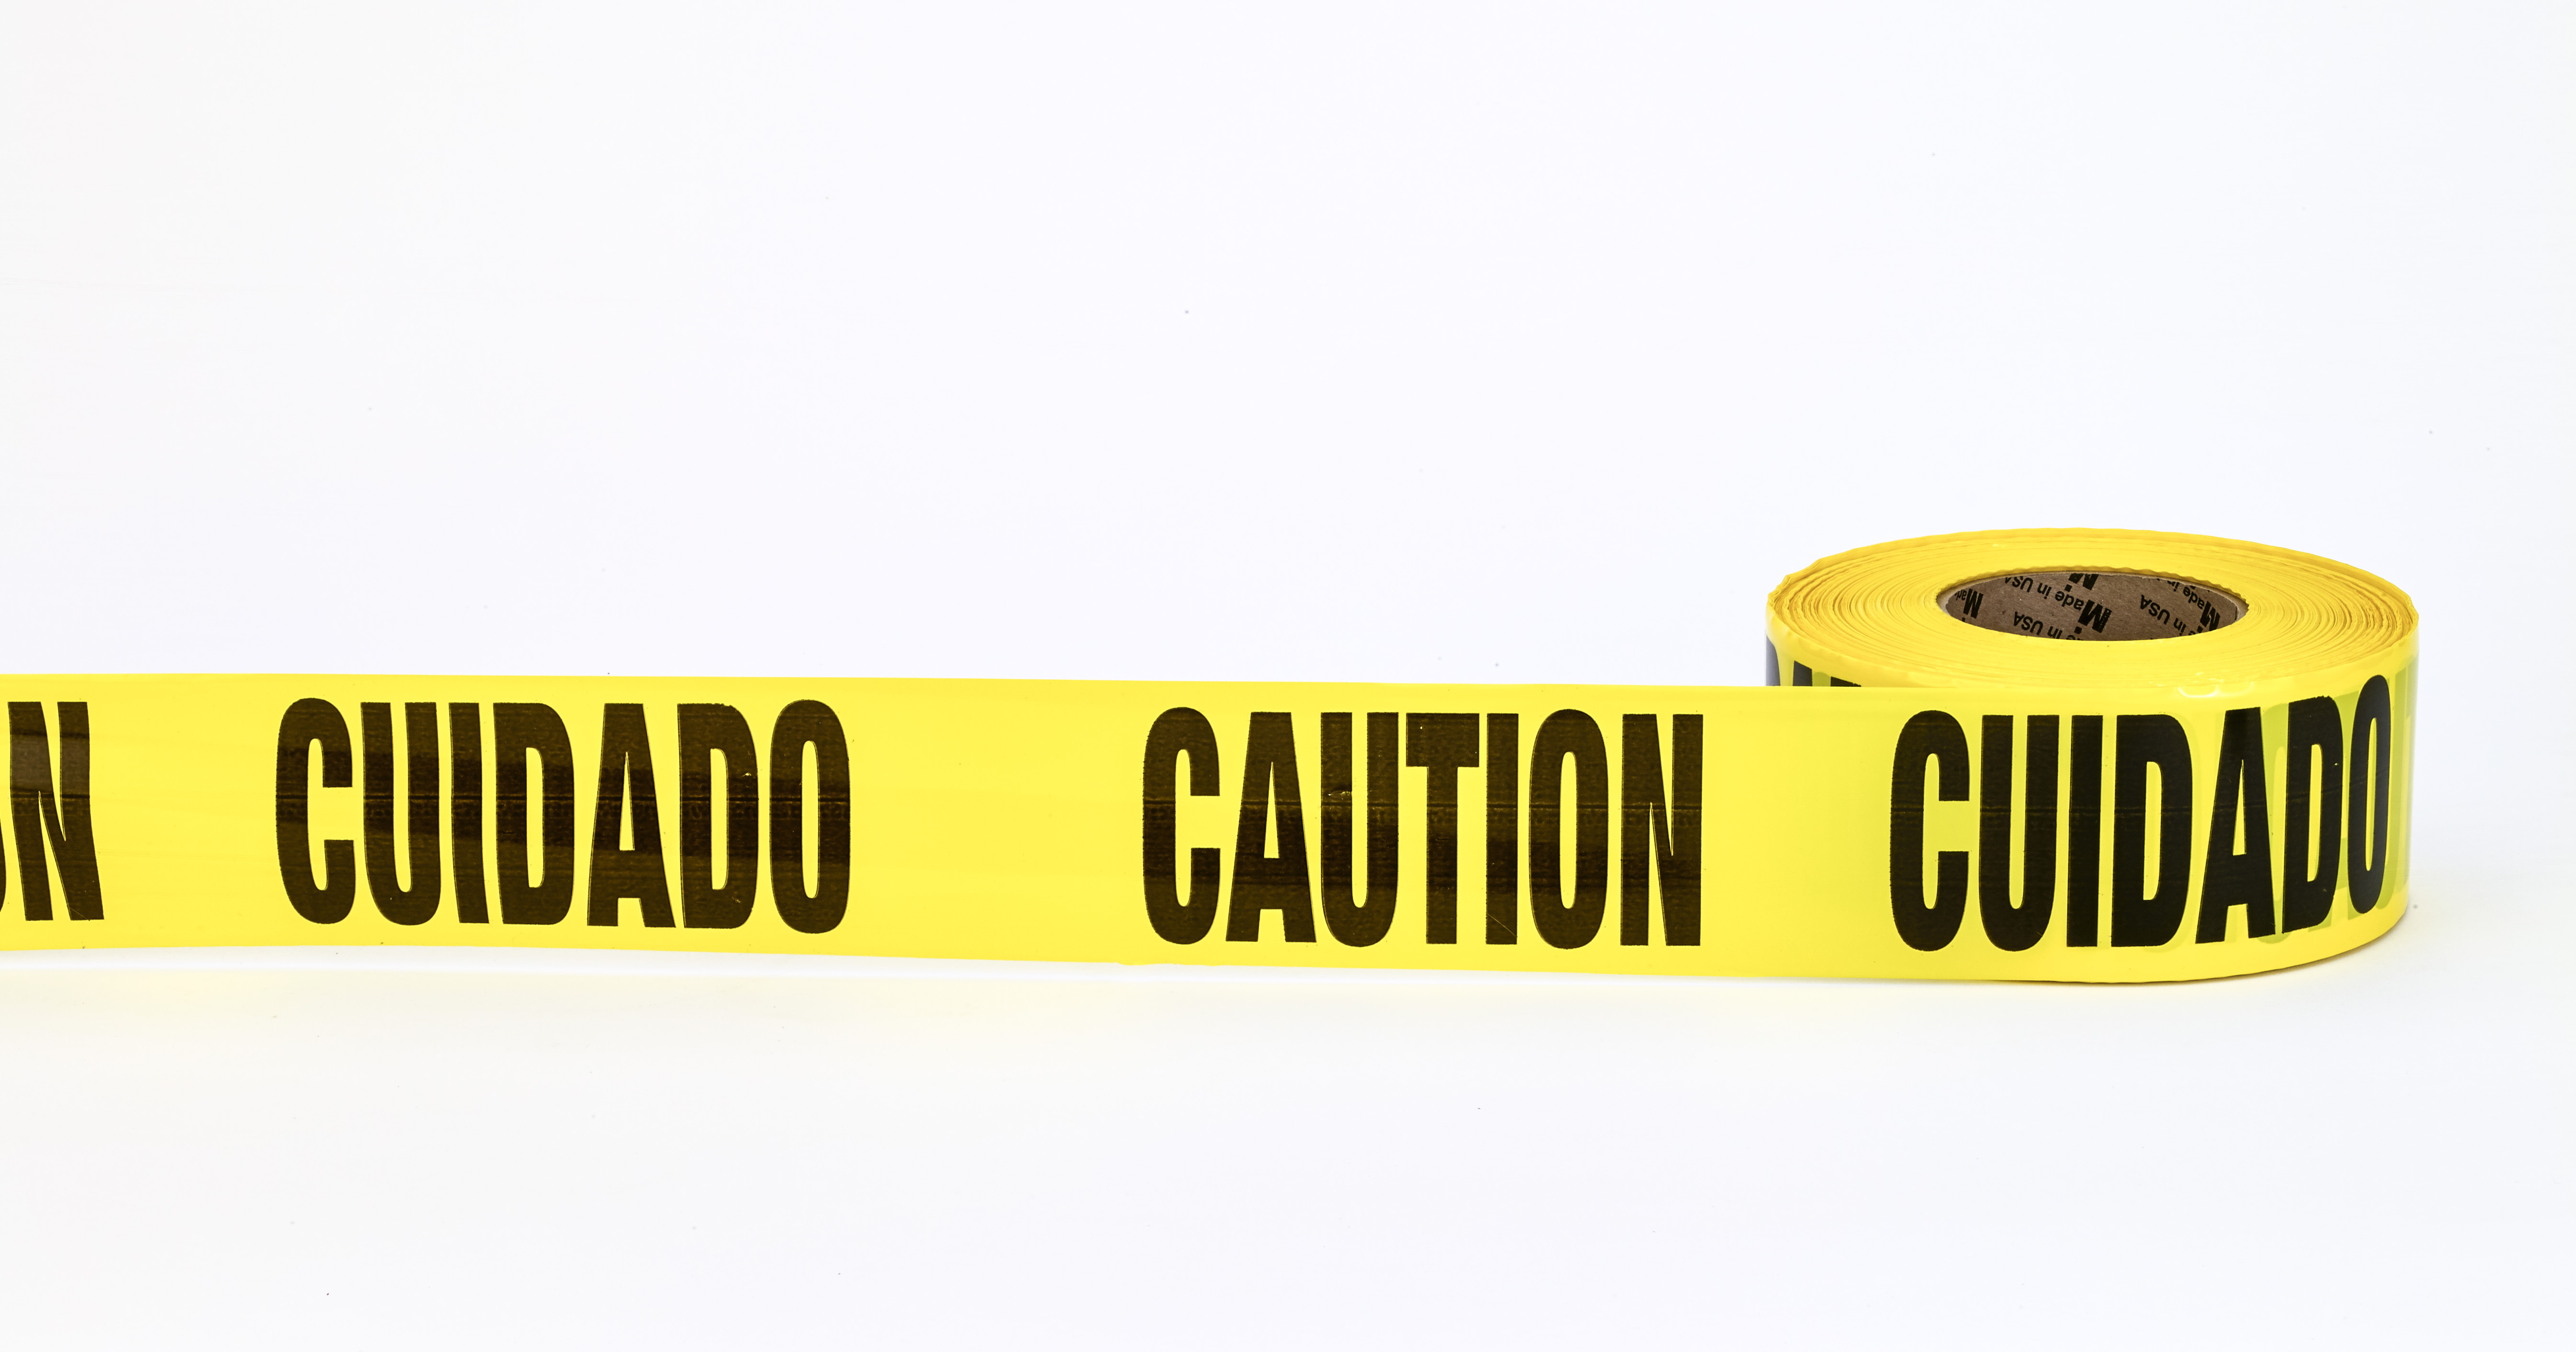 17779-51-3000, 3Mil Barricade Tape, Cuidado Caution, 3 x 1000', Yellow (Pack of 10), Mutual Industries